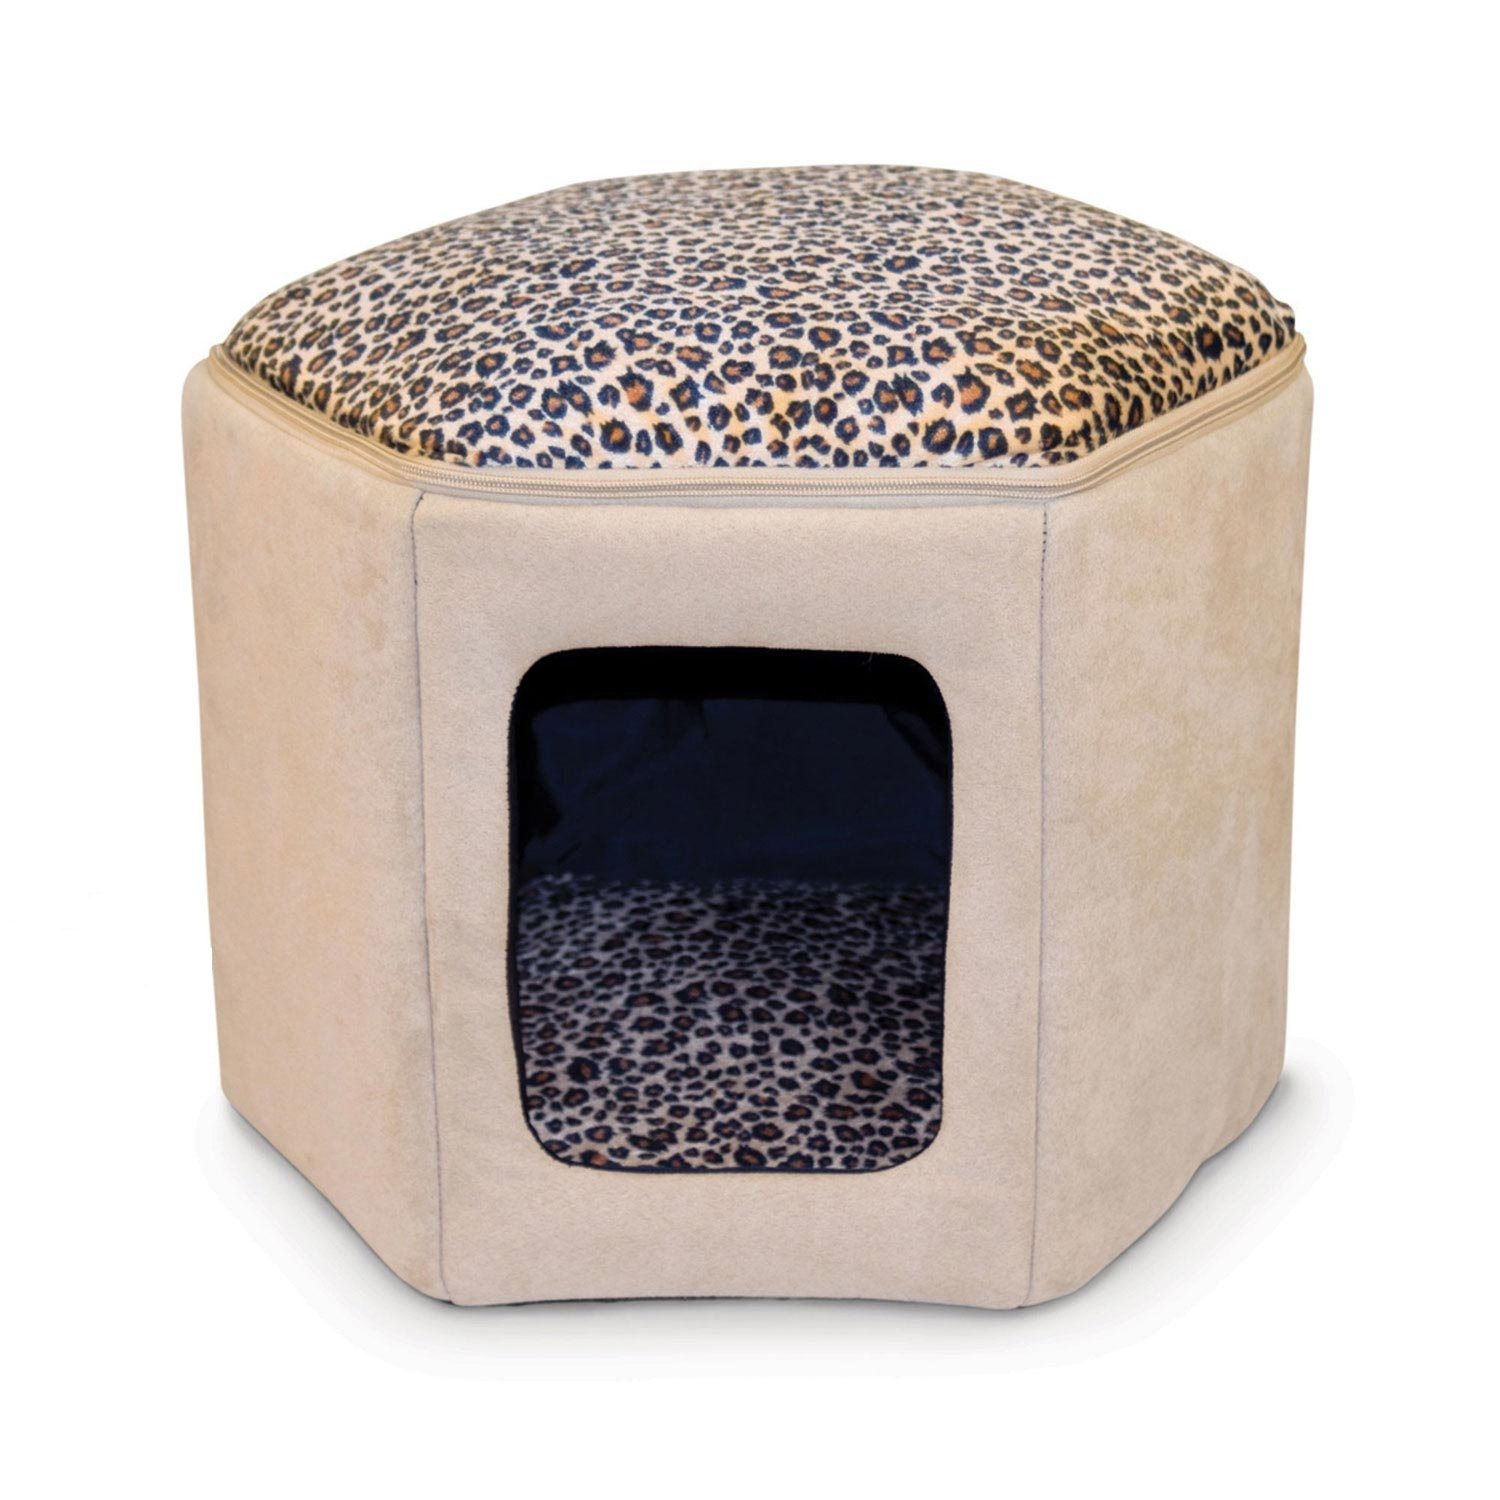 KH Kitty Sleep House Cat Bed in Tan and Leopard Print 17 L X 16 W X 13 H Small